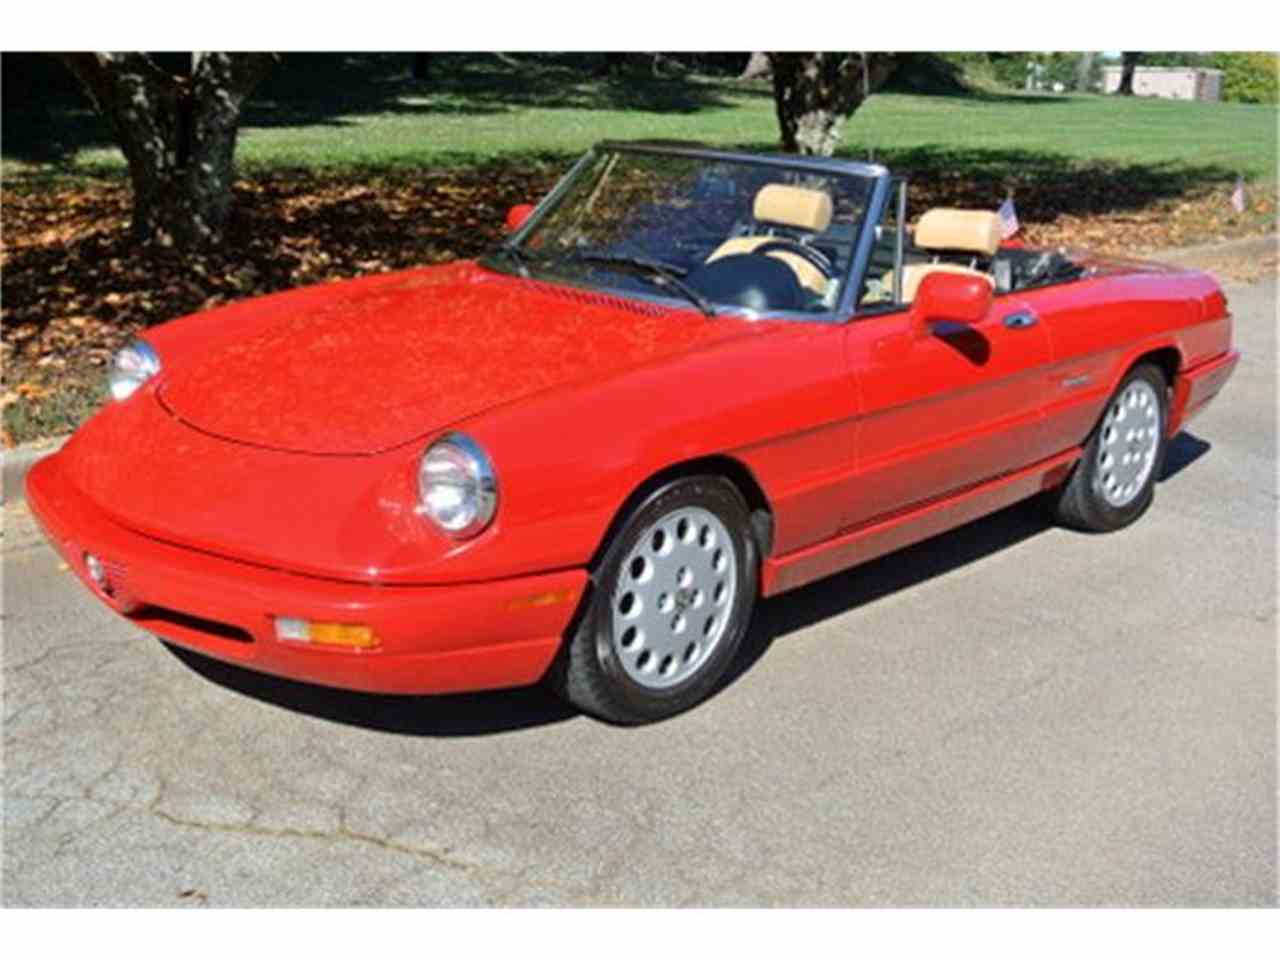 Cars For Sale Newnan Ga 2000: 1991 Alfa Romeo 2000 Spider Veloce For Sale